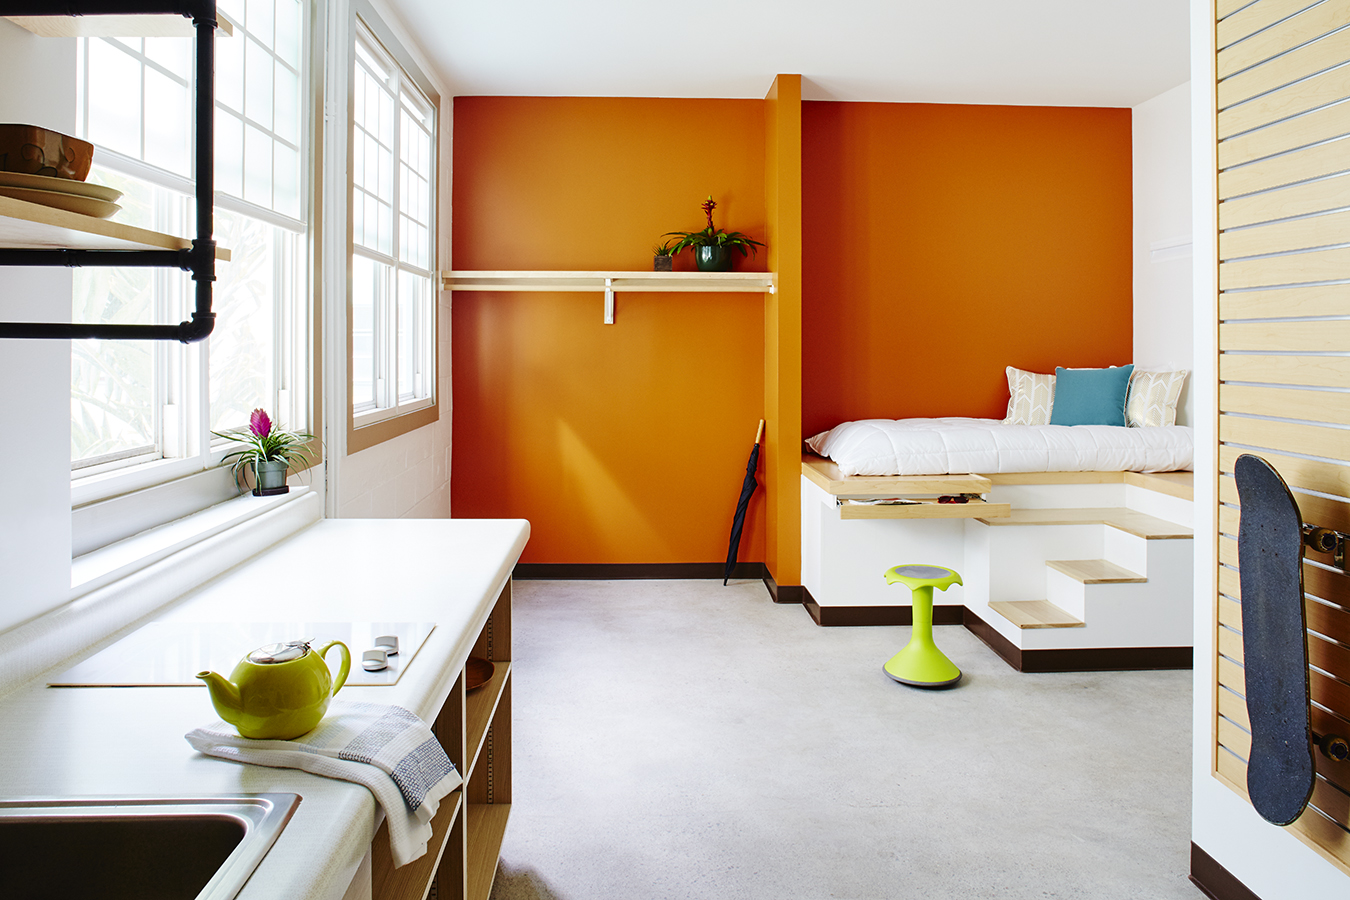 Photograph of the interior of an apartment, showing a small kitchenette, a bright orange wall, and a built-in platform bed.